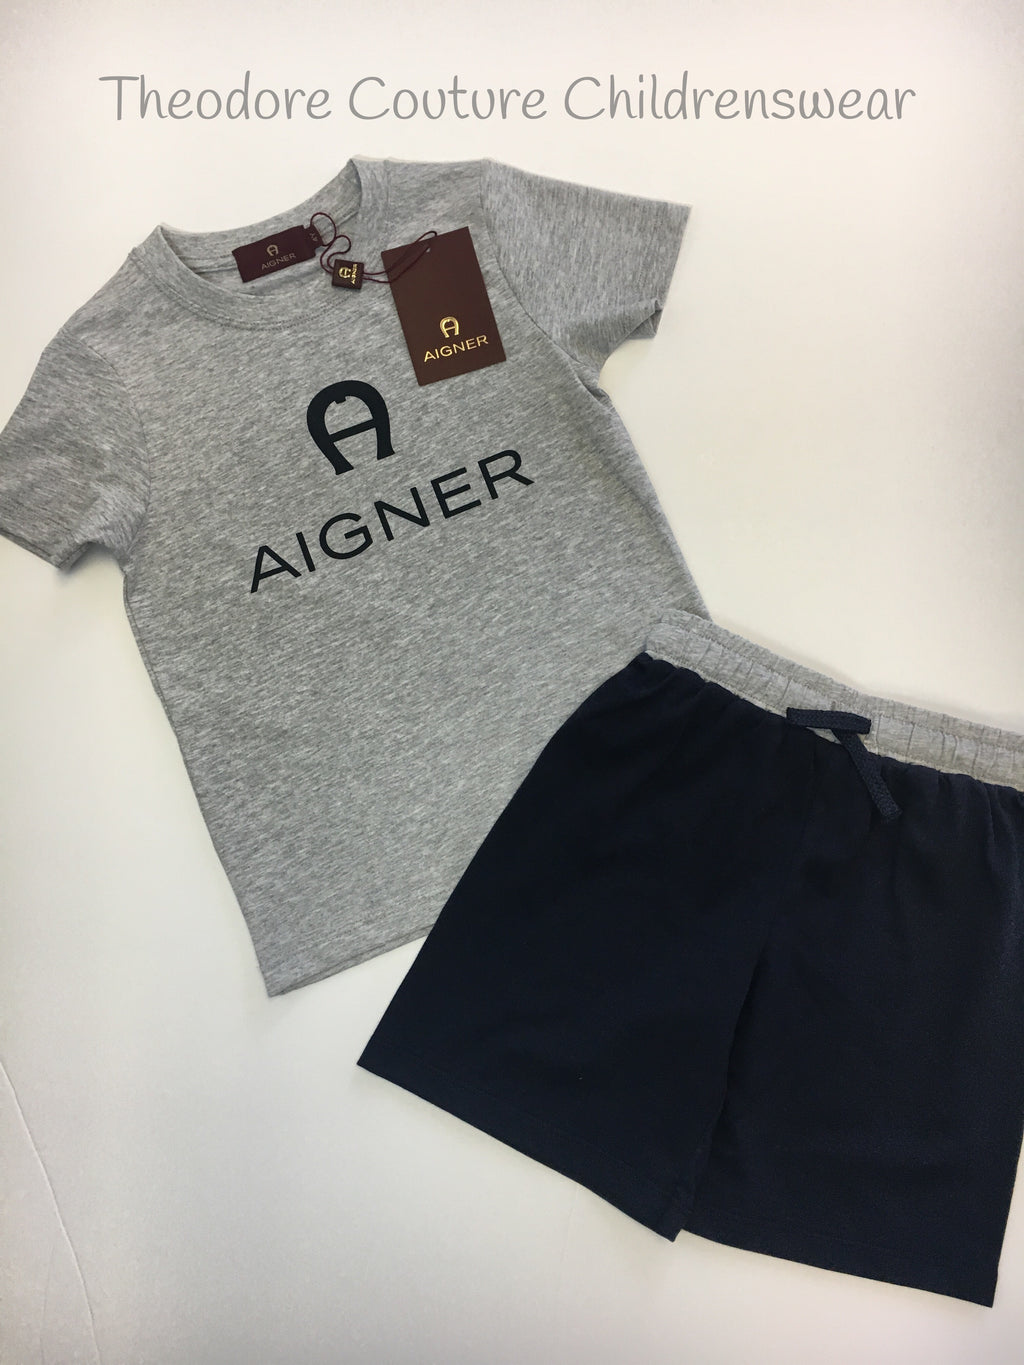 7c1156701 Aigner T Shirt and Short Set